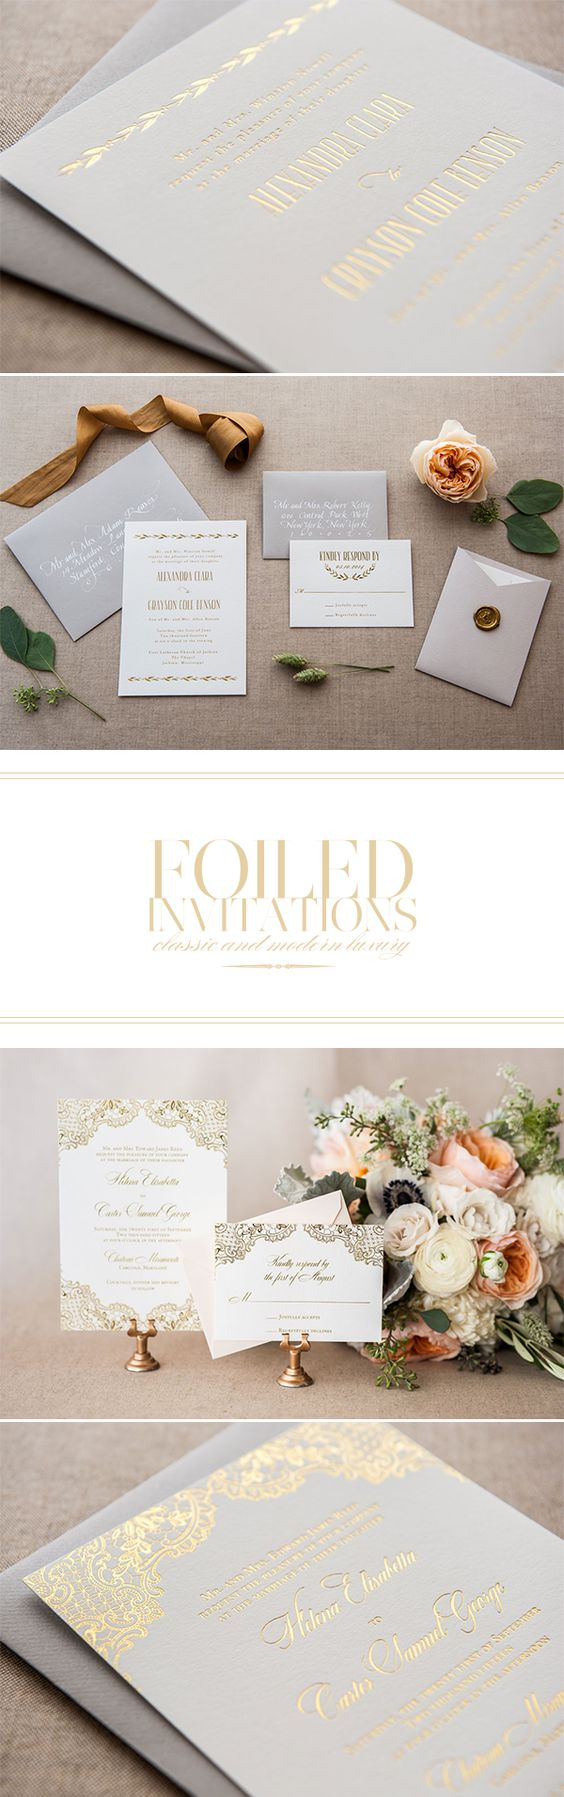 Win an Invitation Suite from Foiled Invitations on Once Wed | http://www.oncewed.com/new-sponsor-blog/win-invitation-suite-foiled-invitations/: